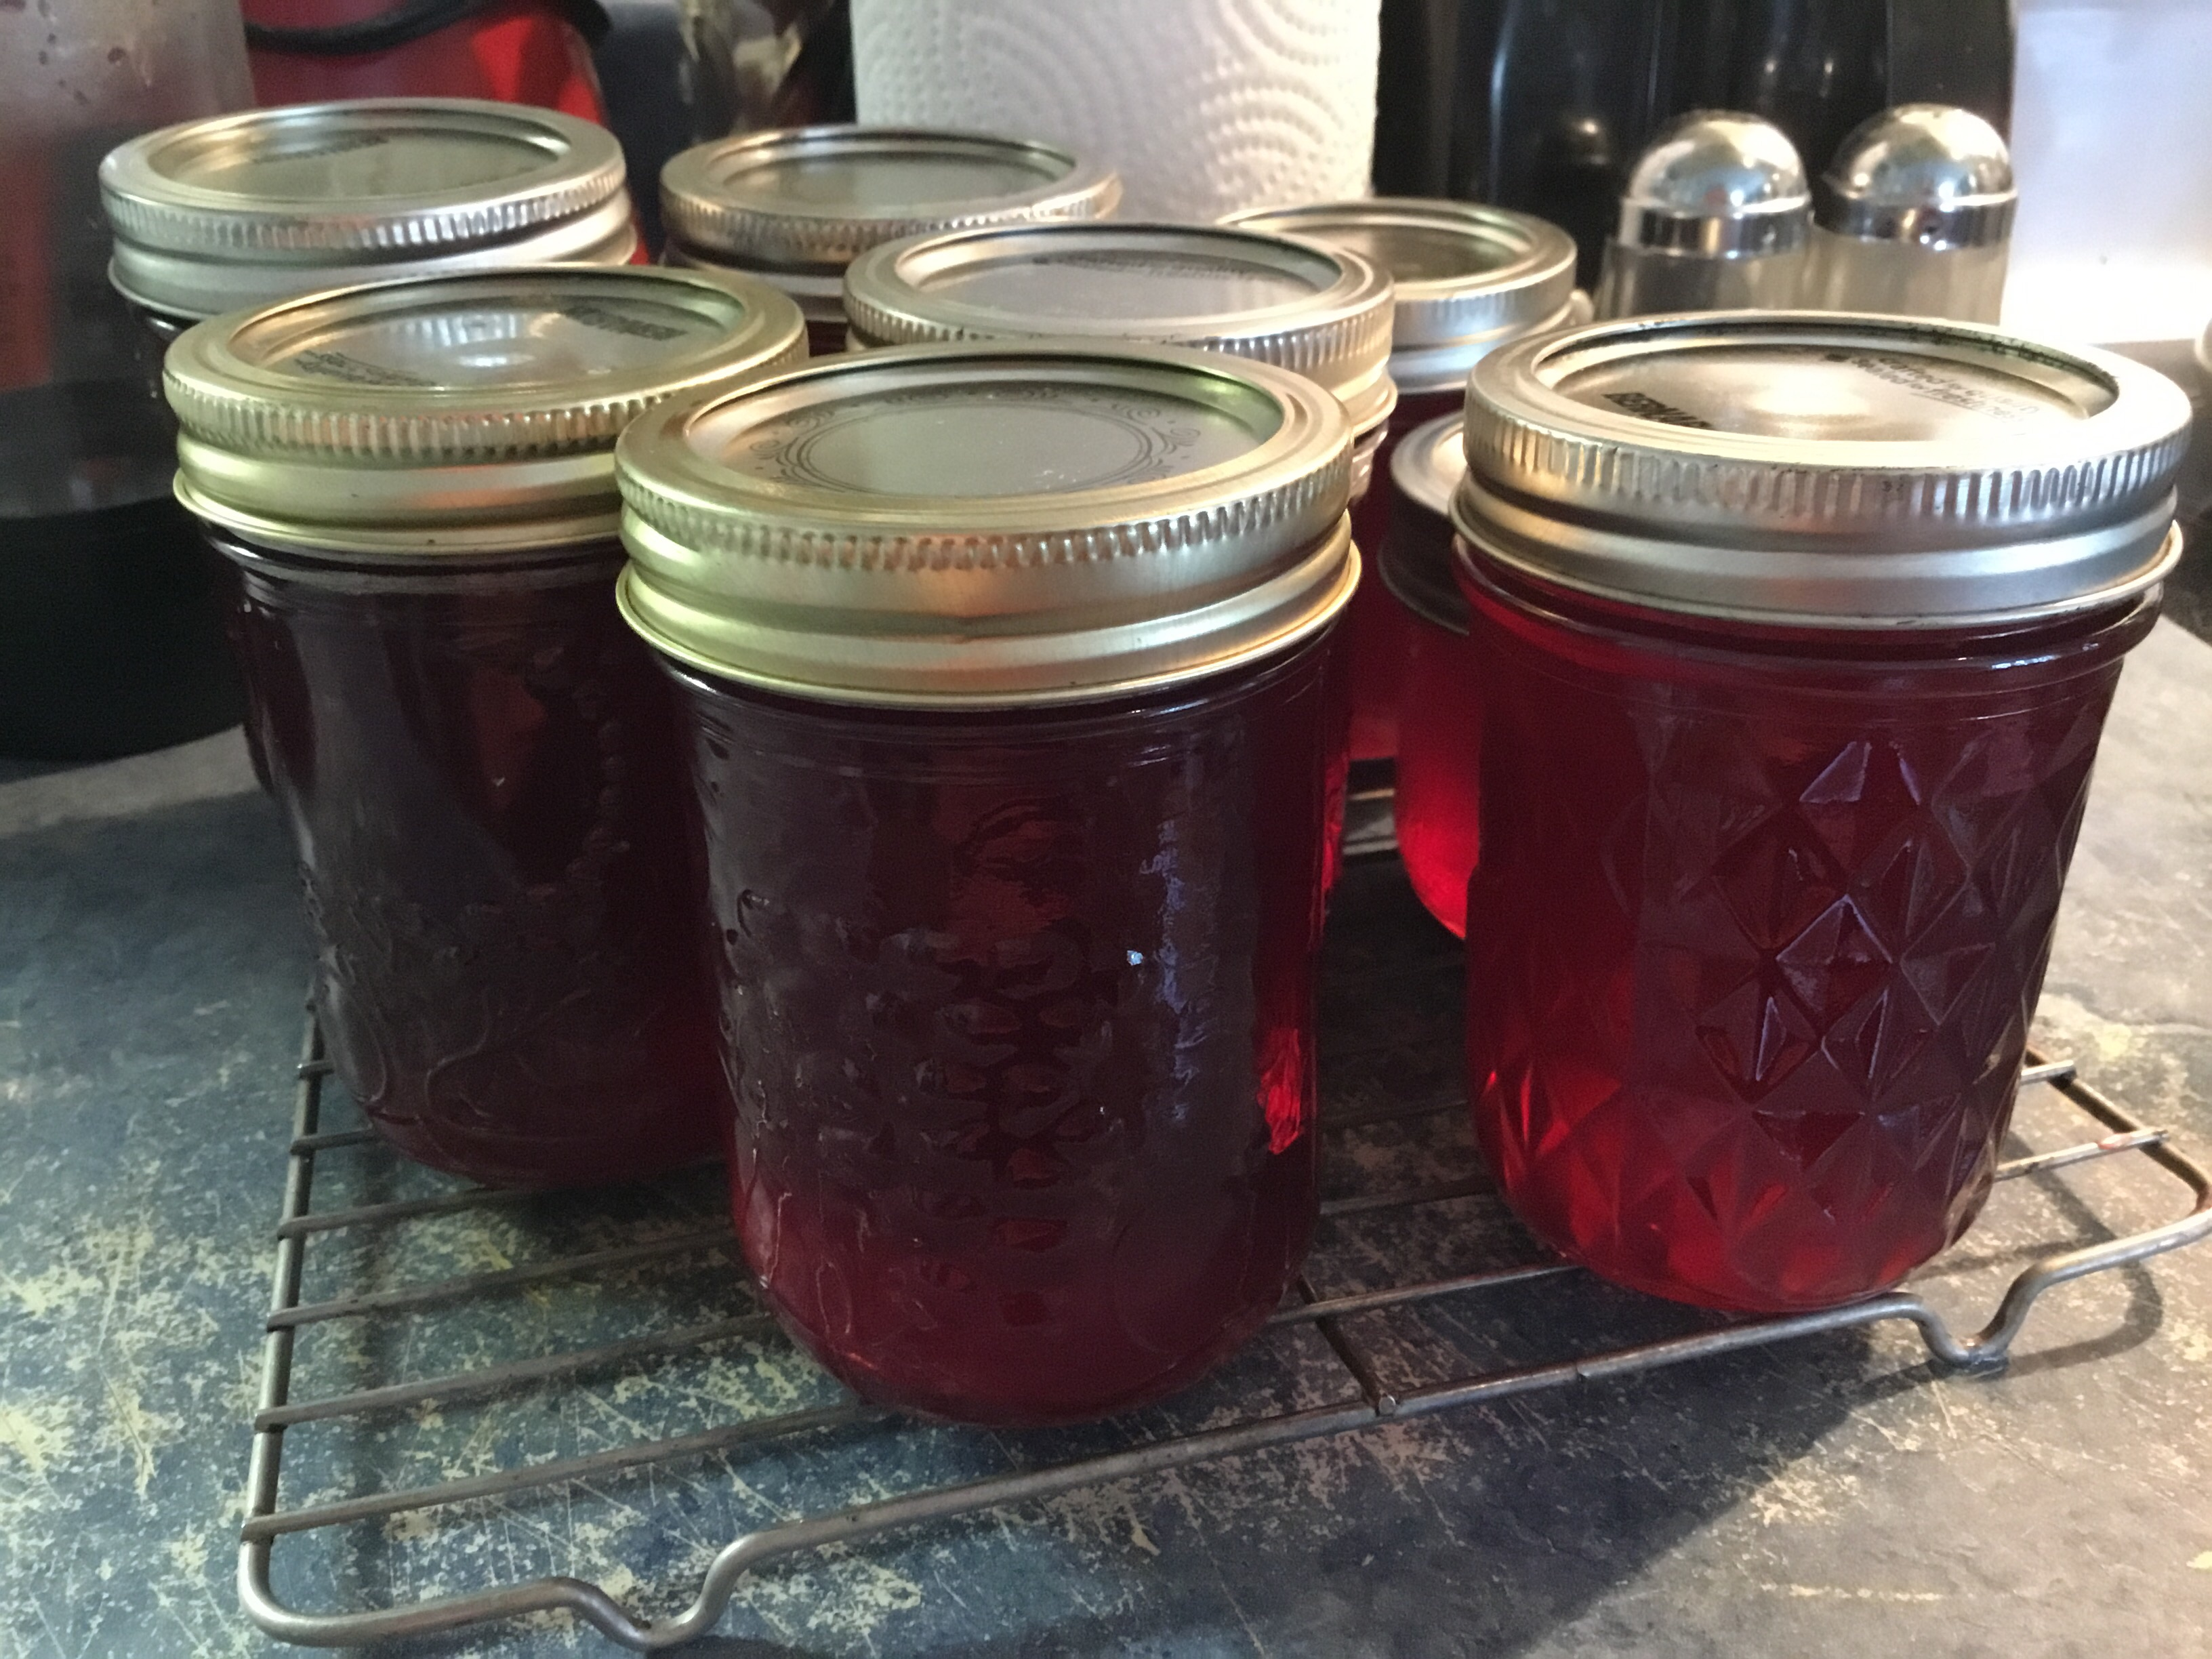 Concord Grape Jelly Faye Craig